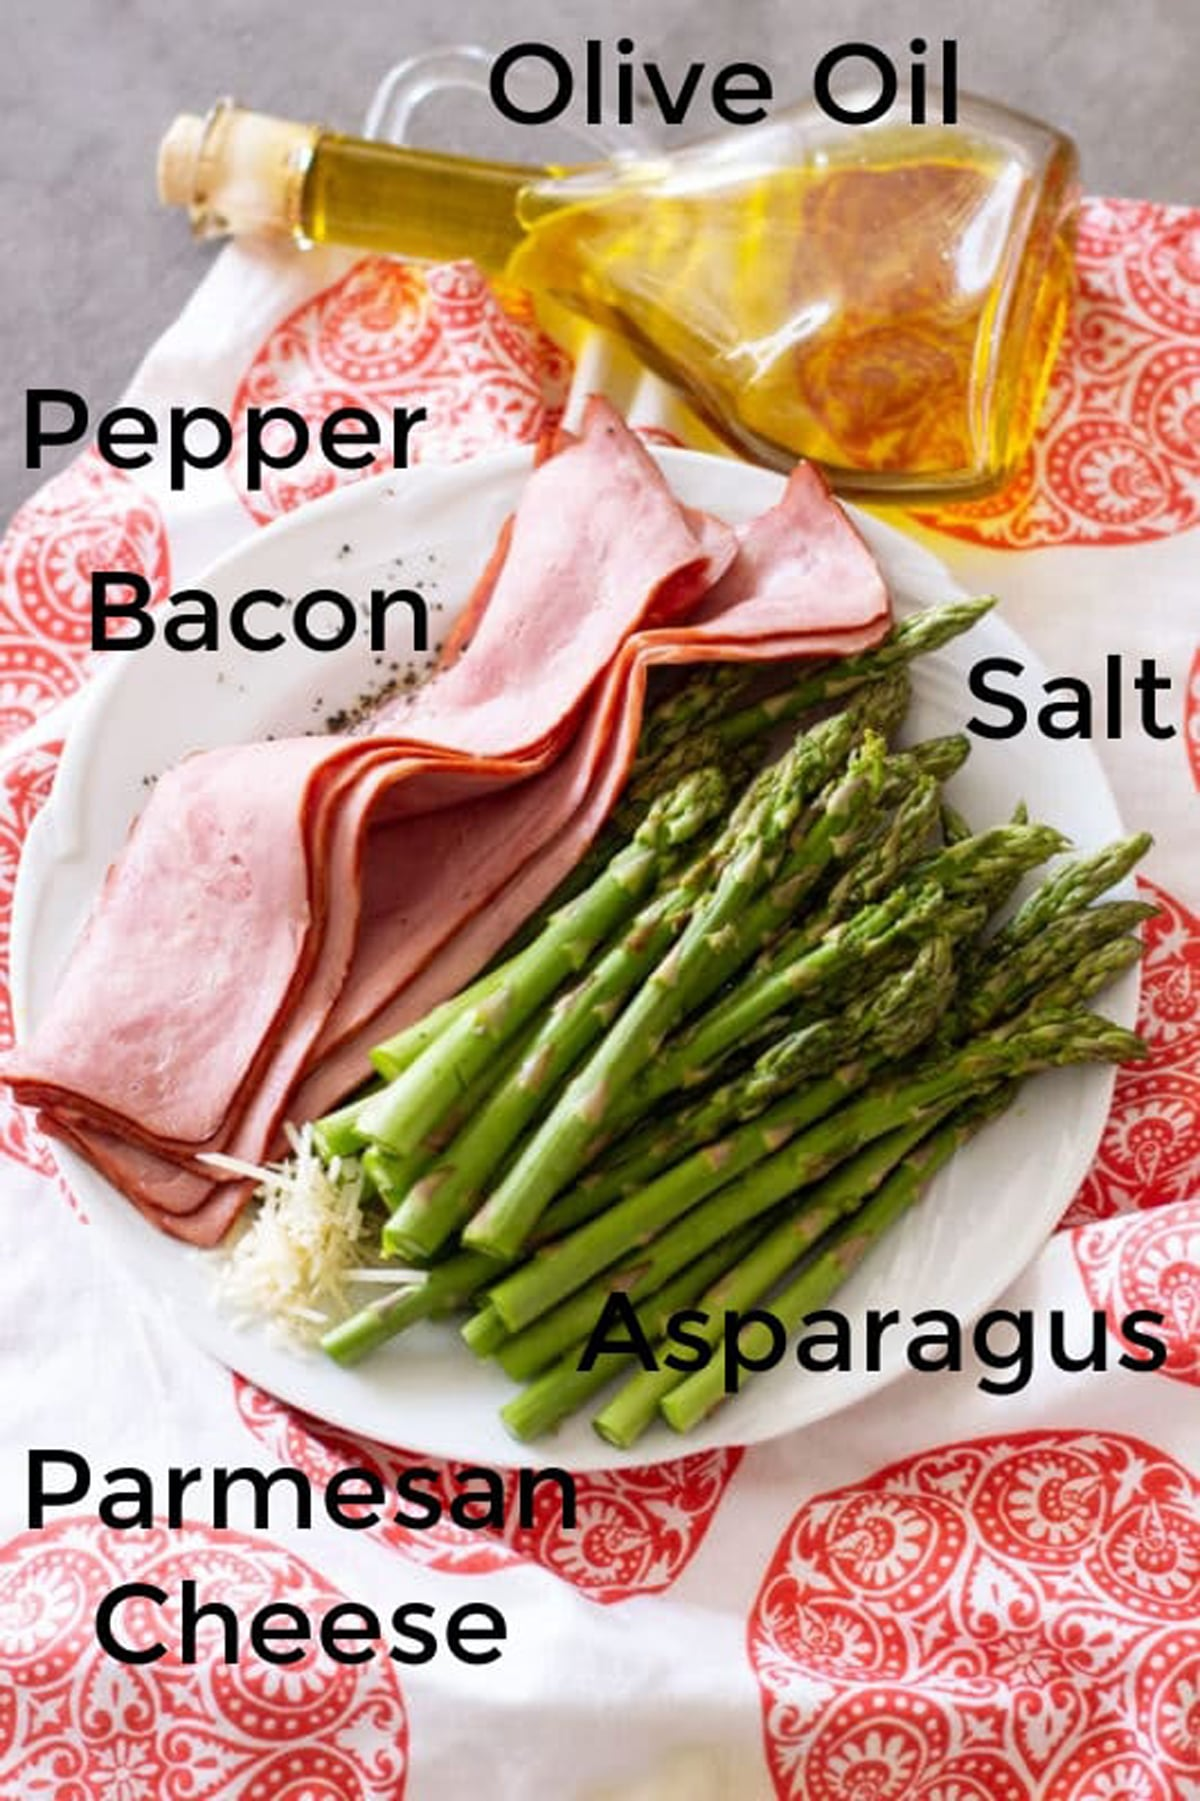 Asparagus, pepper, bacon, salt, olive oil, Parmesan cheese on a counter.